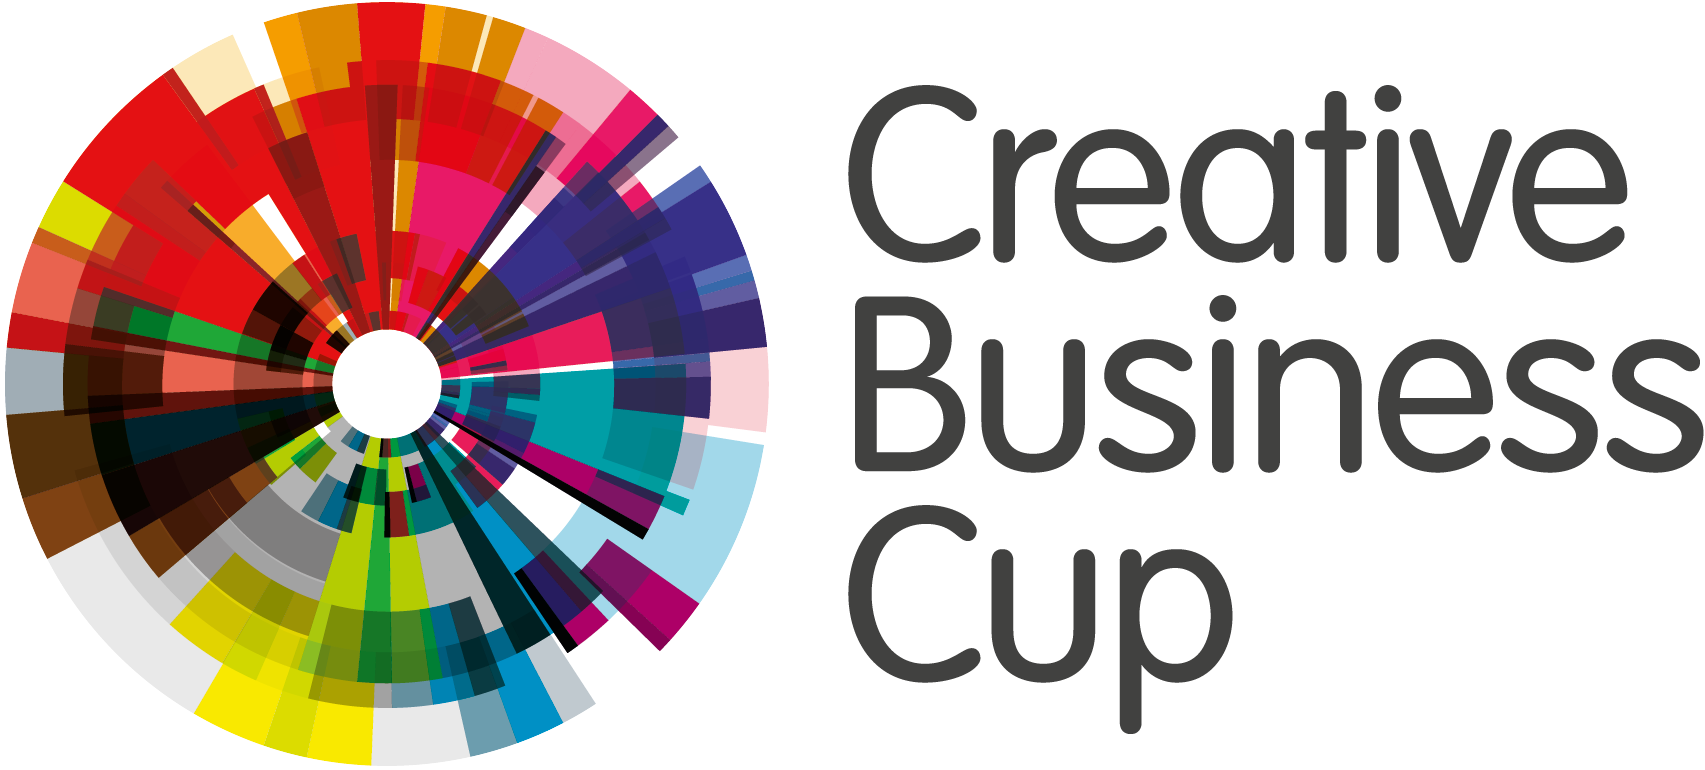 CREATIVE BUSINESS CUP 2020